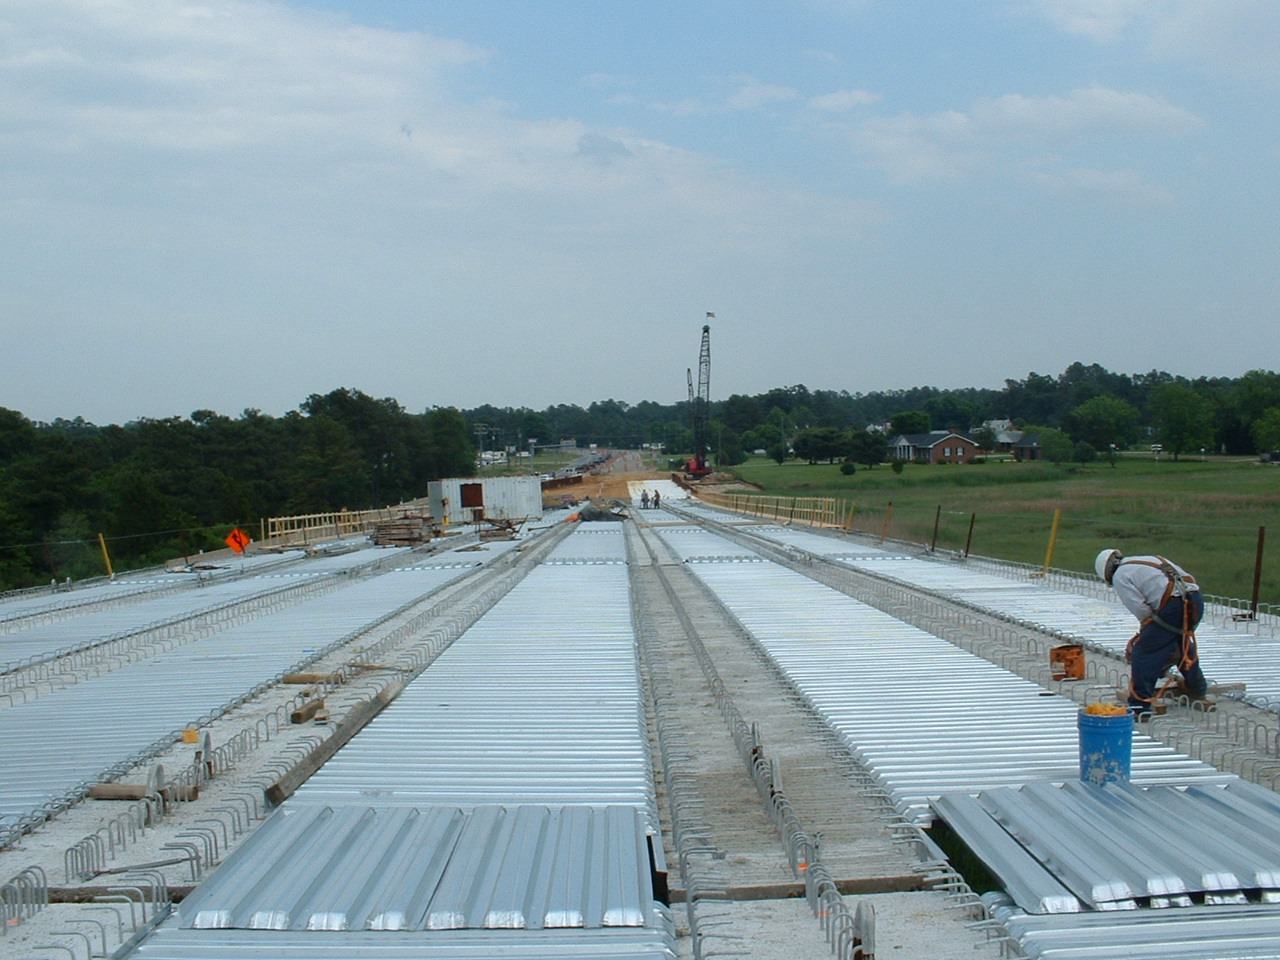 Metal deck pan installation for bridge deck